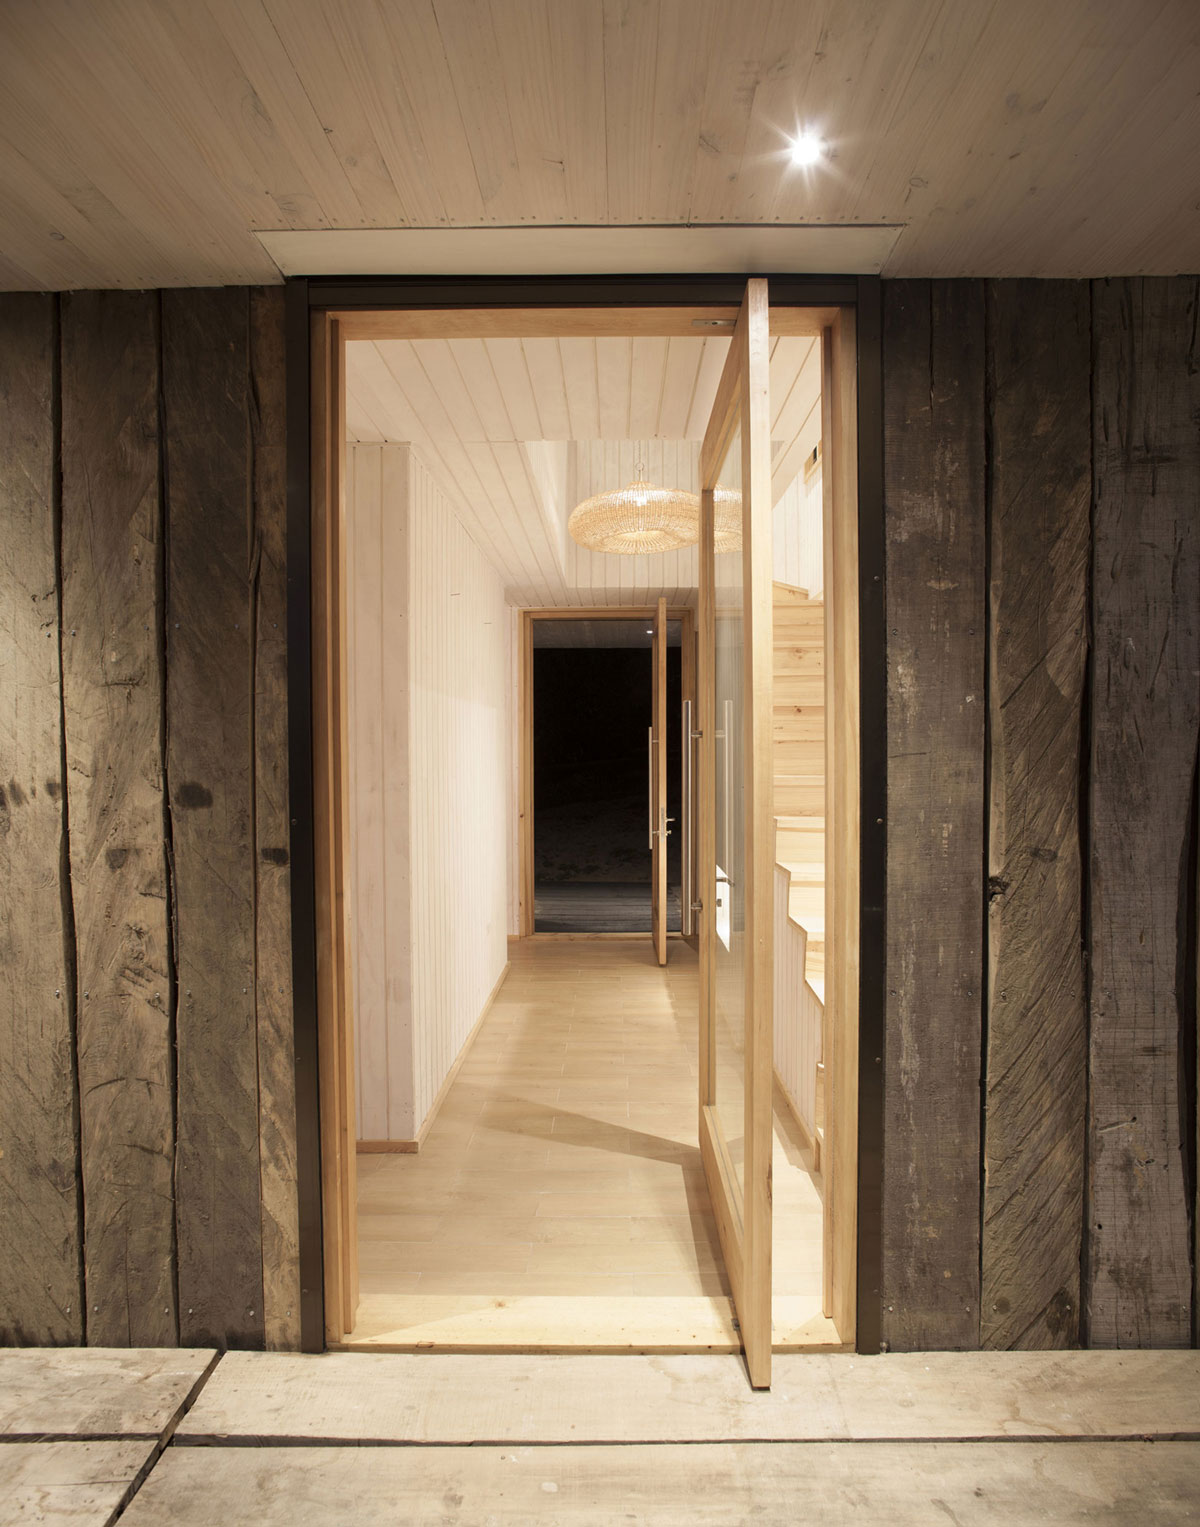 Wooden Walls, Entrance Doors, Family Home in Algarrobo, Chile